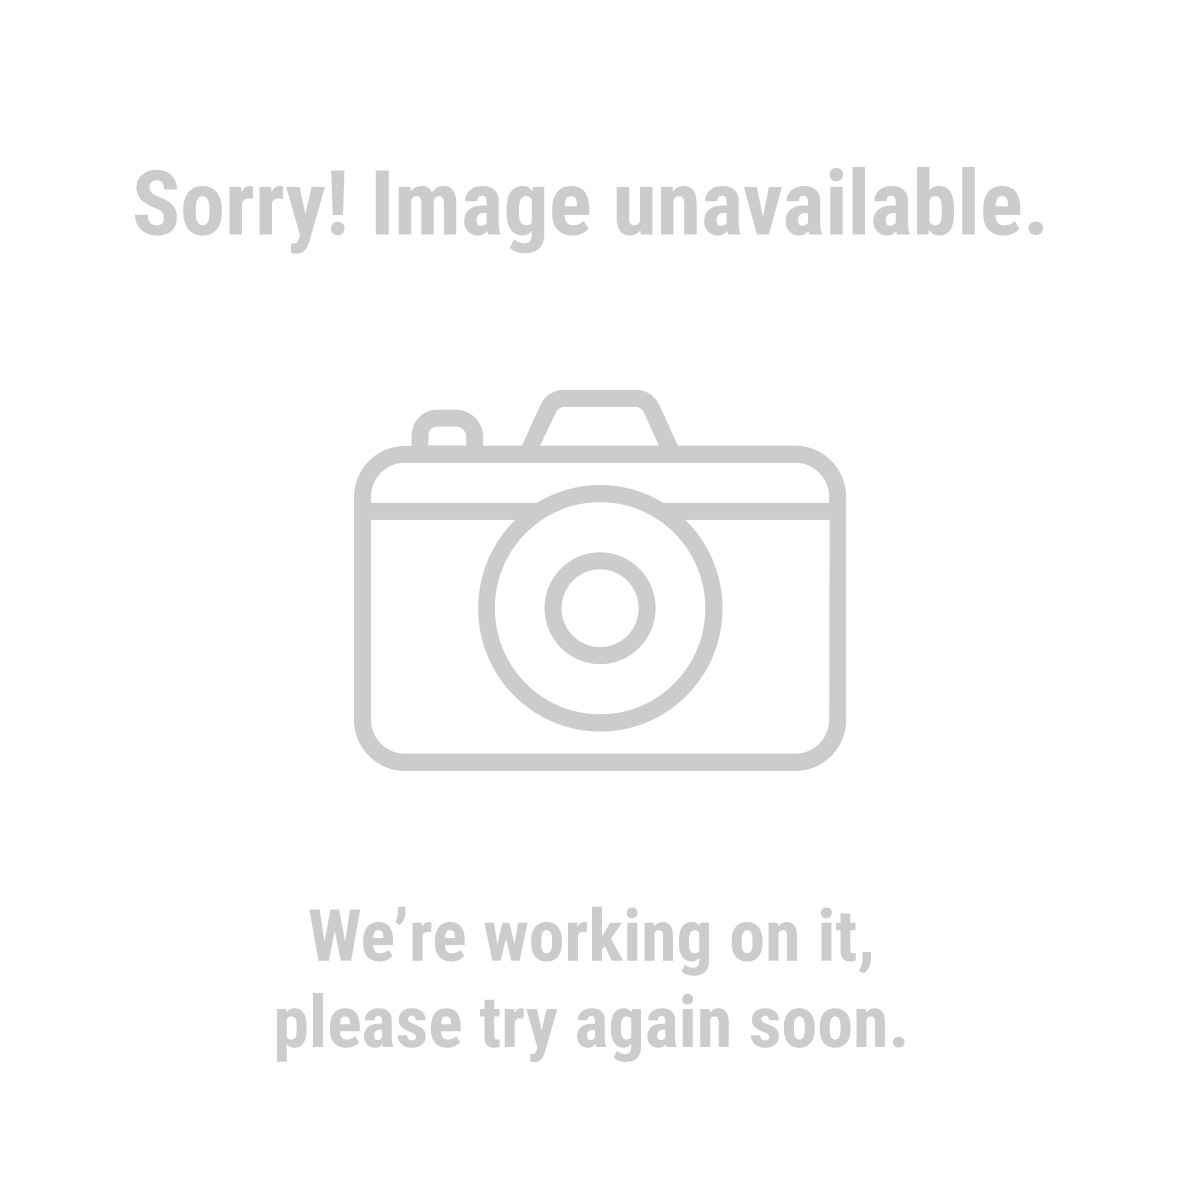 Central Pneumatic 62380 6 gal. 1.5 HP 150 PSI Professional Air Compressor